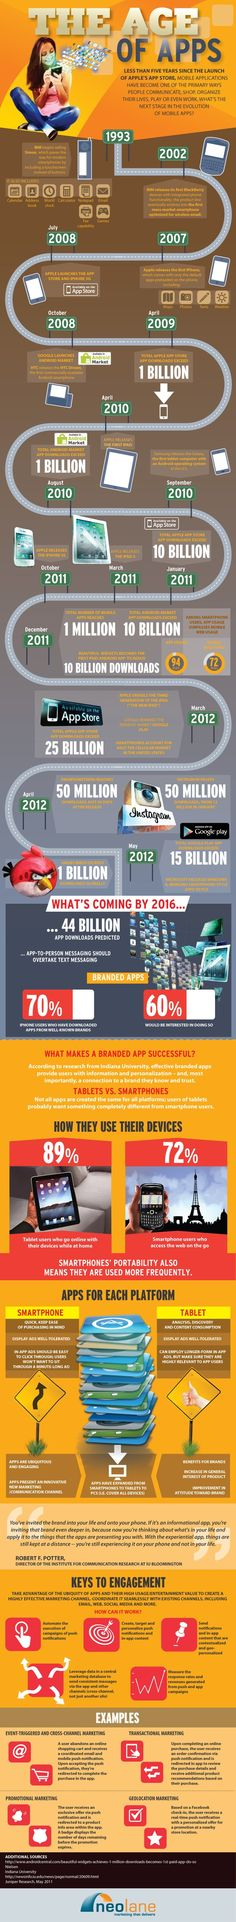 The World of Apps #infographic (repinned by @ricardollera)